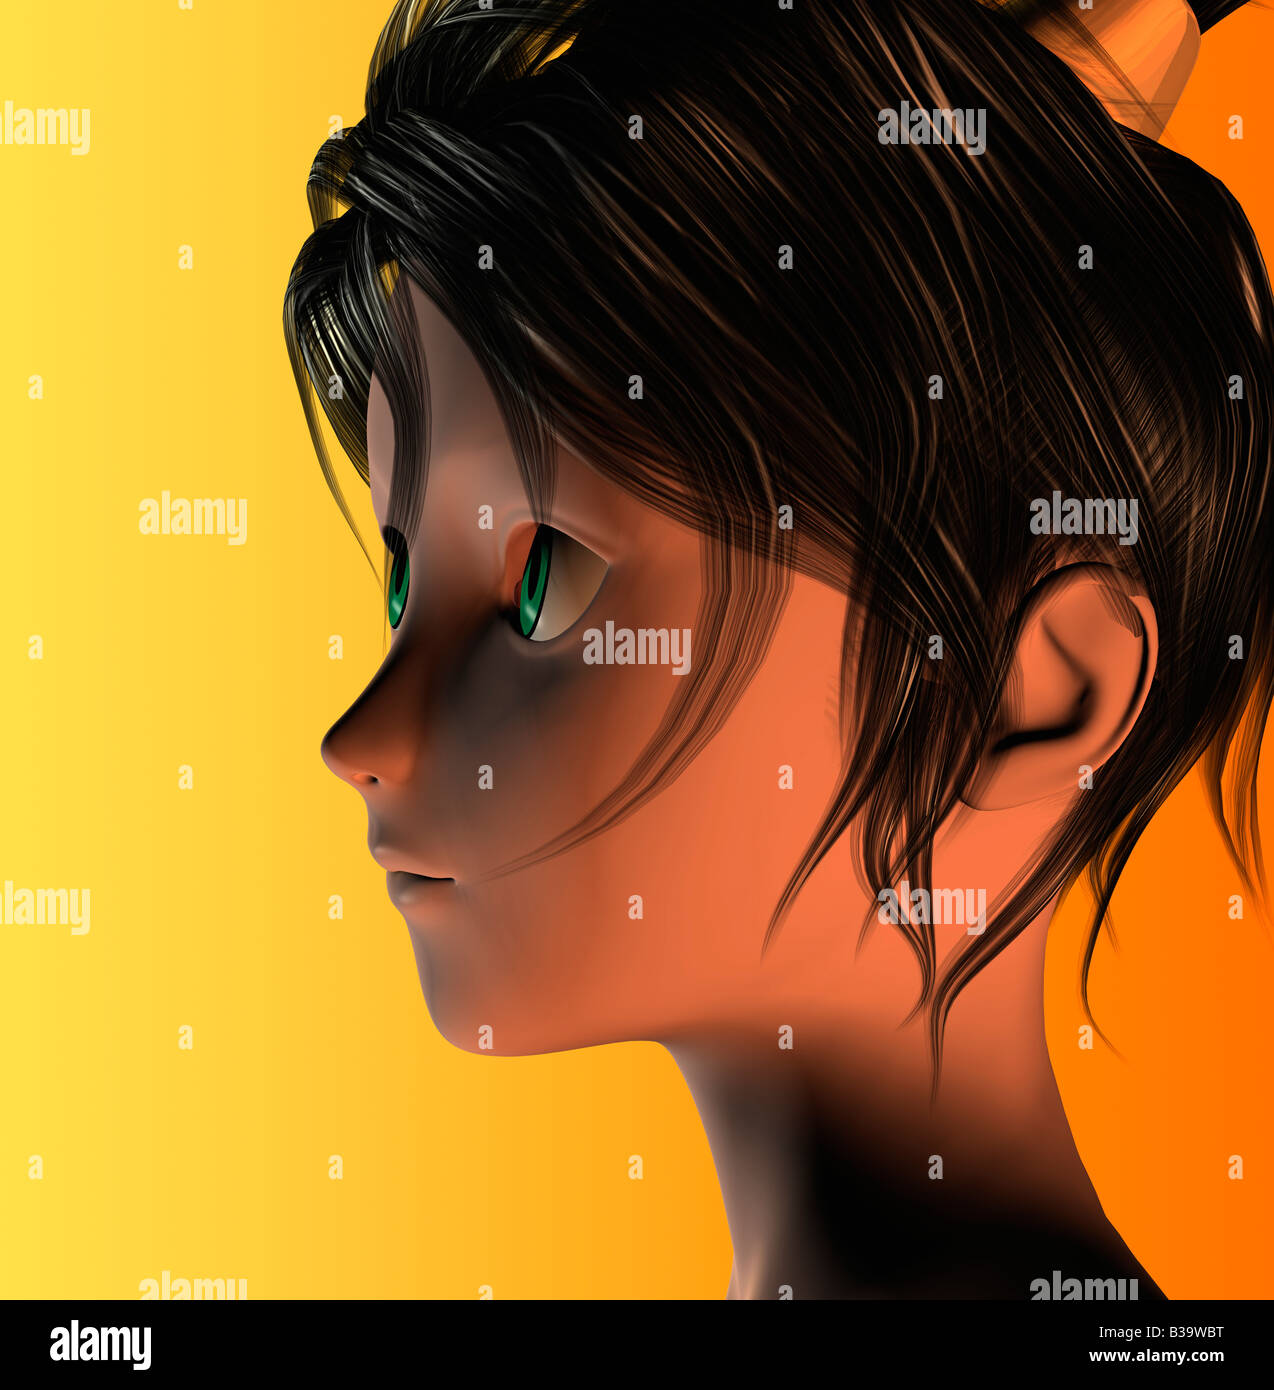 Computer Illustration Of Young Woman - Stock Image